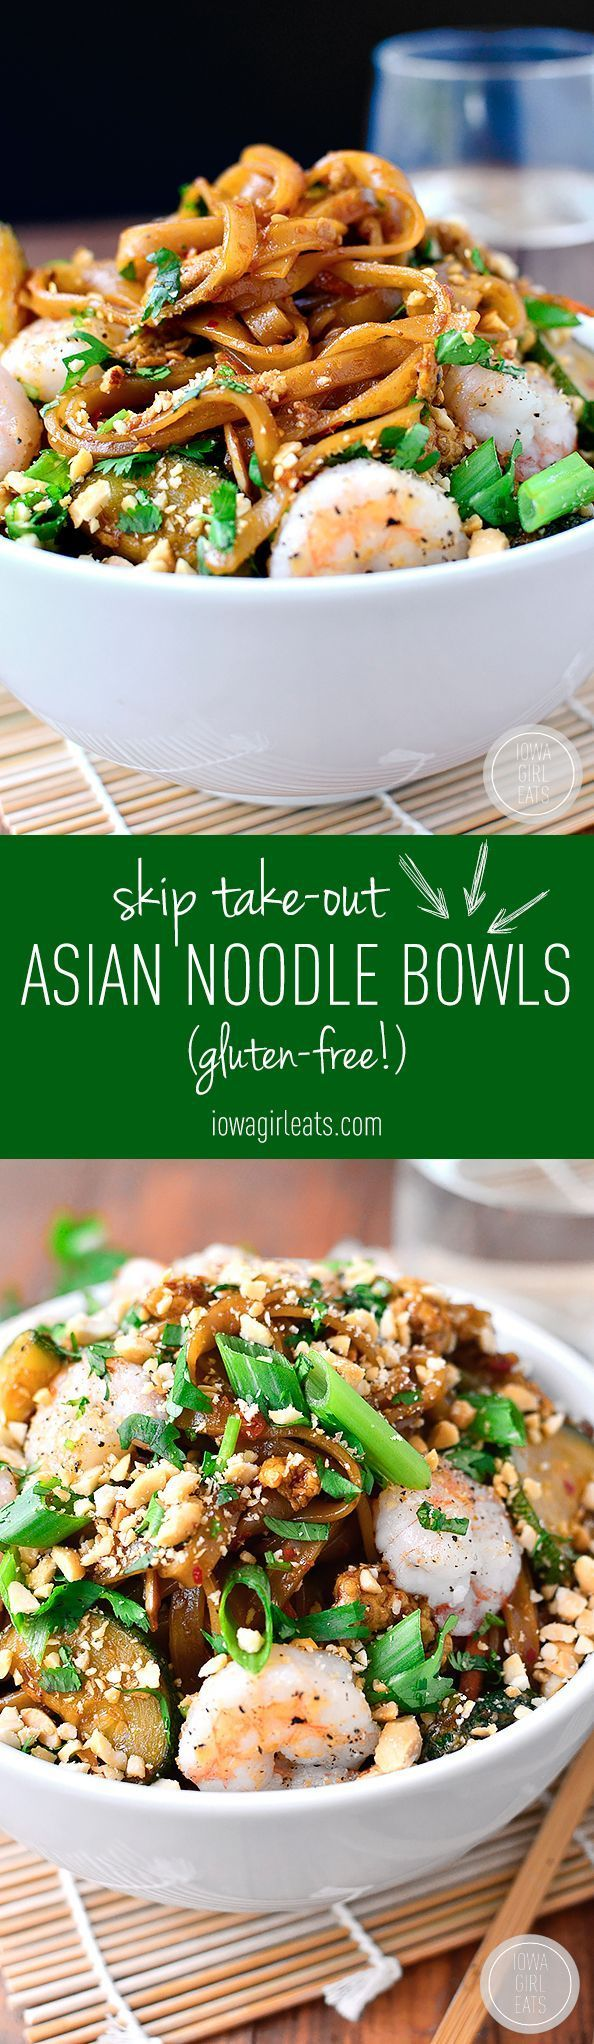 Asian Noodle Bowls are quick, tasty and will satisfy your craving for takeout in 30 minutes or less! #glutenfree | iowagirleats.com